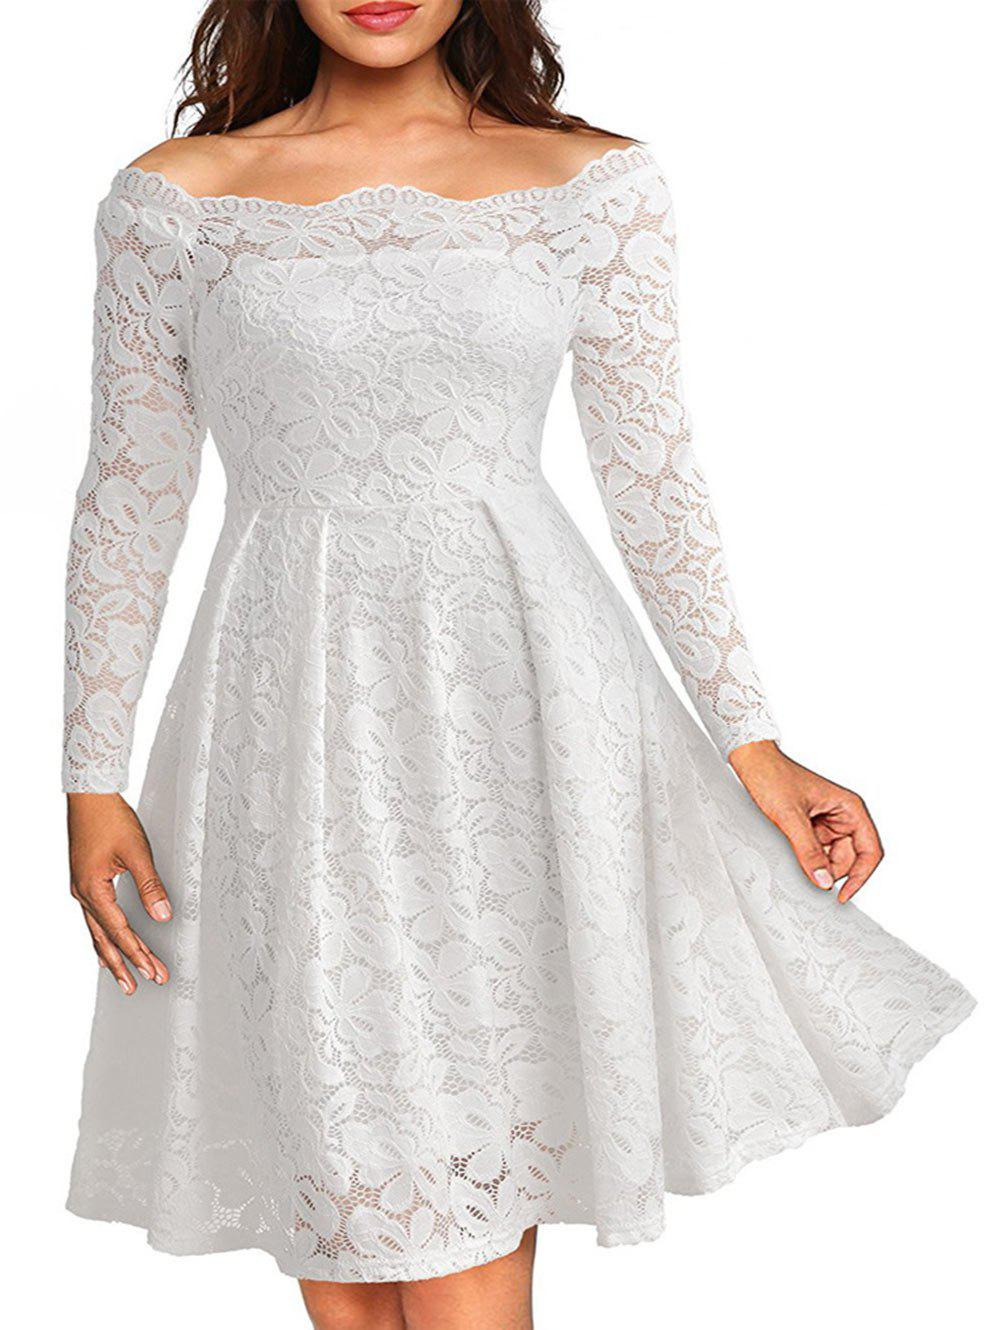 Fashion Long Sleeve Off The Shoulder Lace Dress